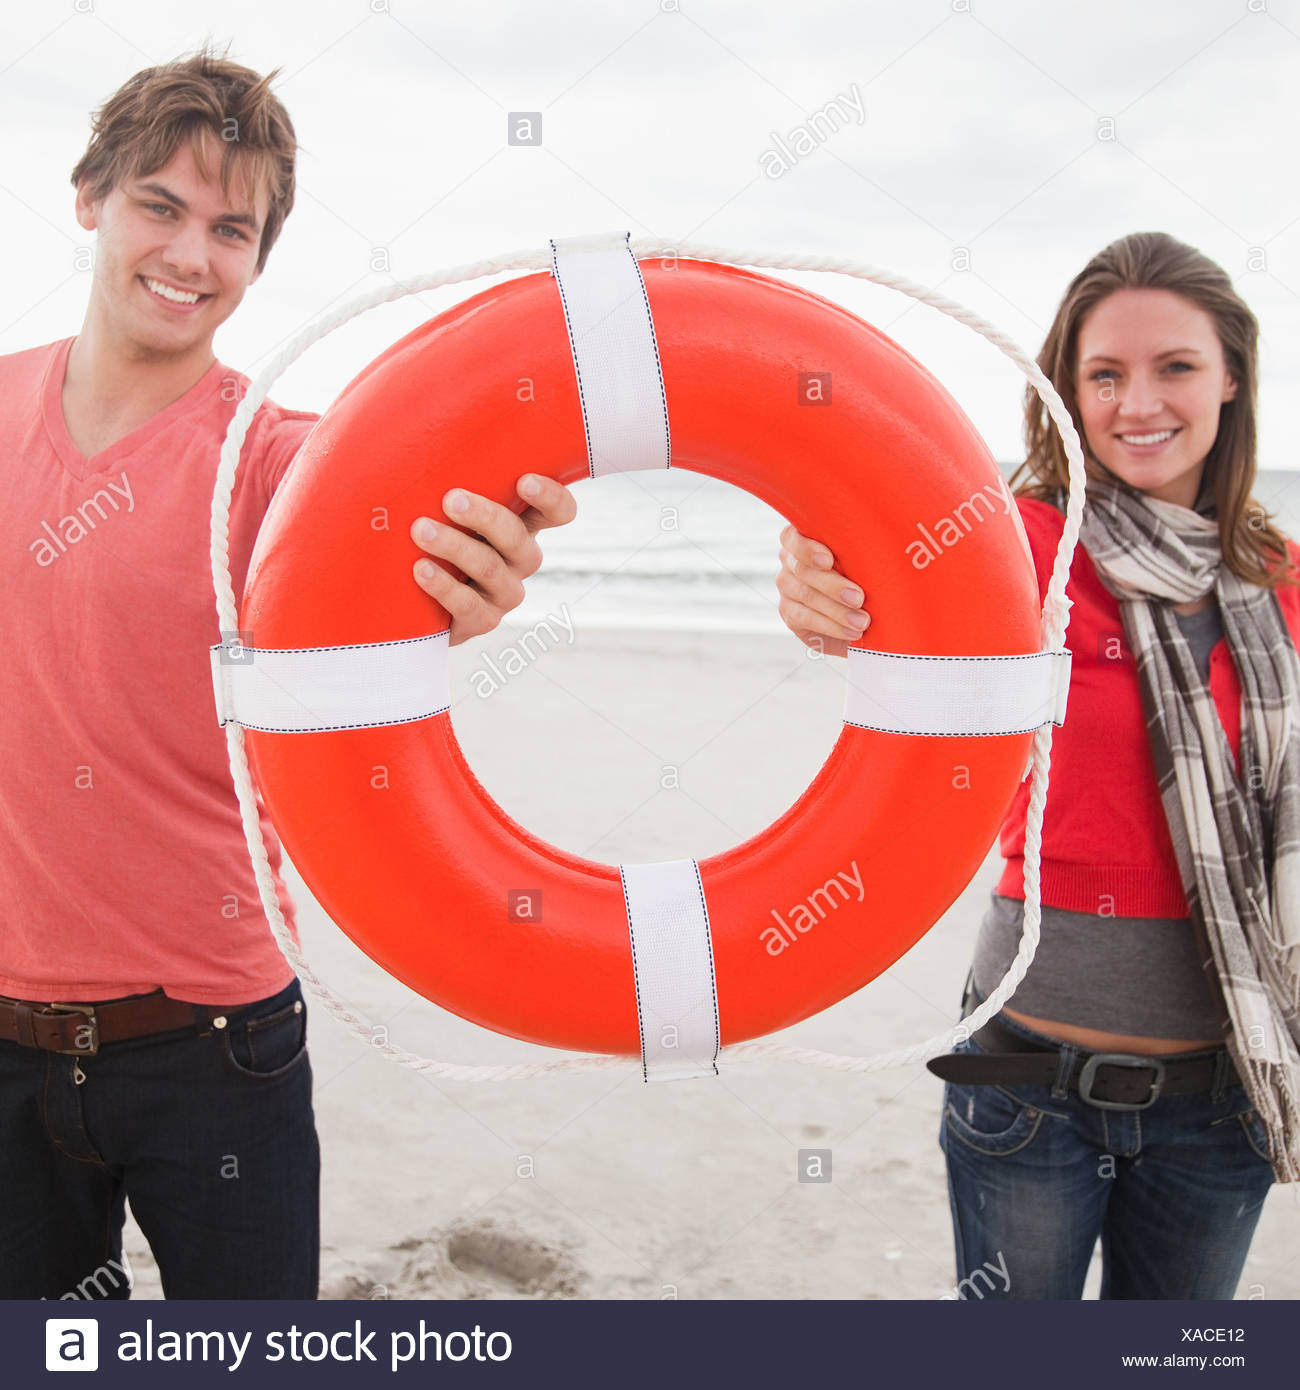 stock alamy flotation rings images holding couple image photos ring bgyjer photo life